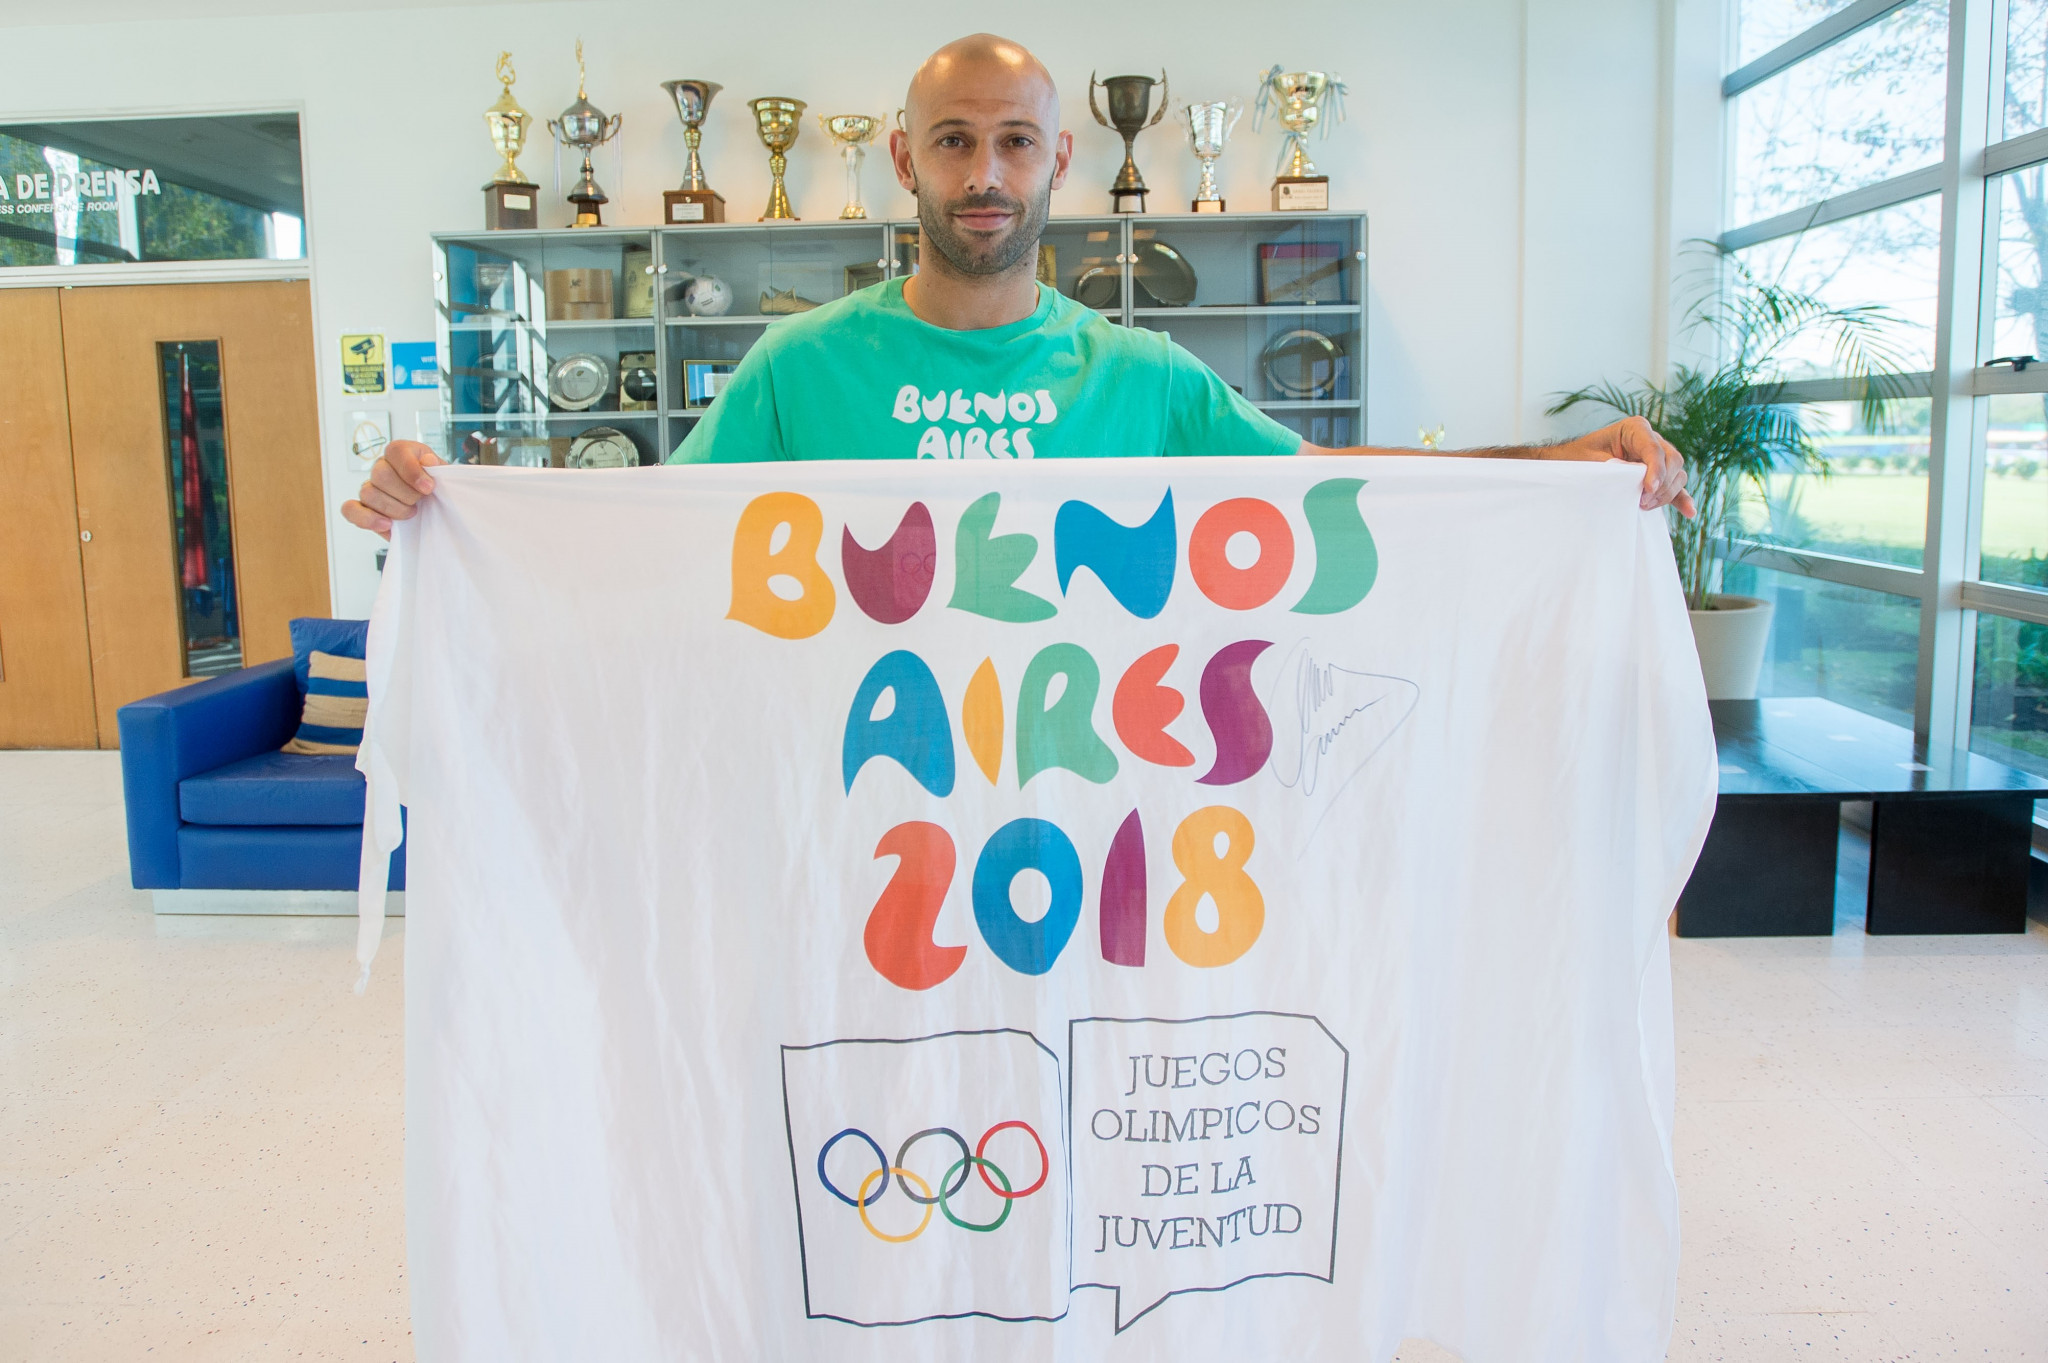 Argentina's most capped footballer Mascherano named ambassador for Buenos Aires 2018